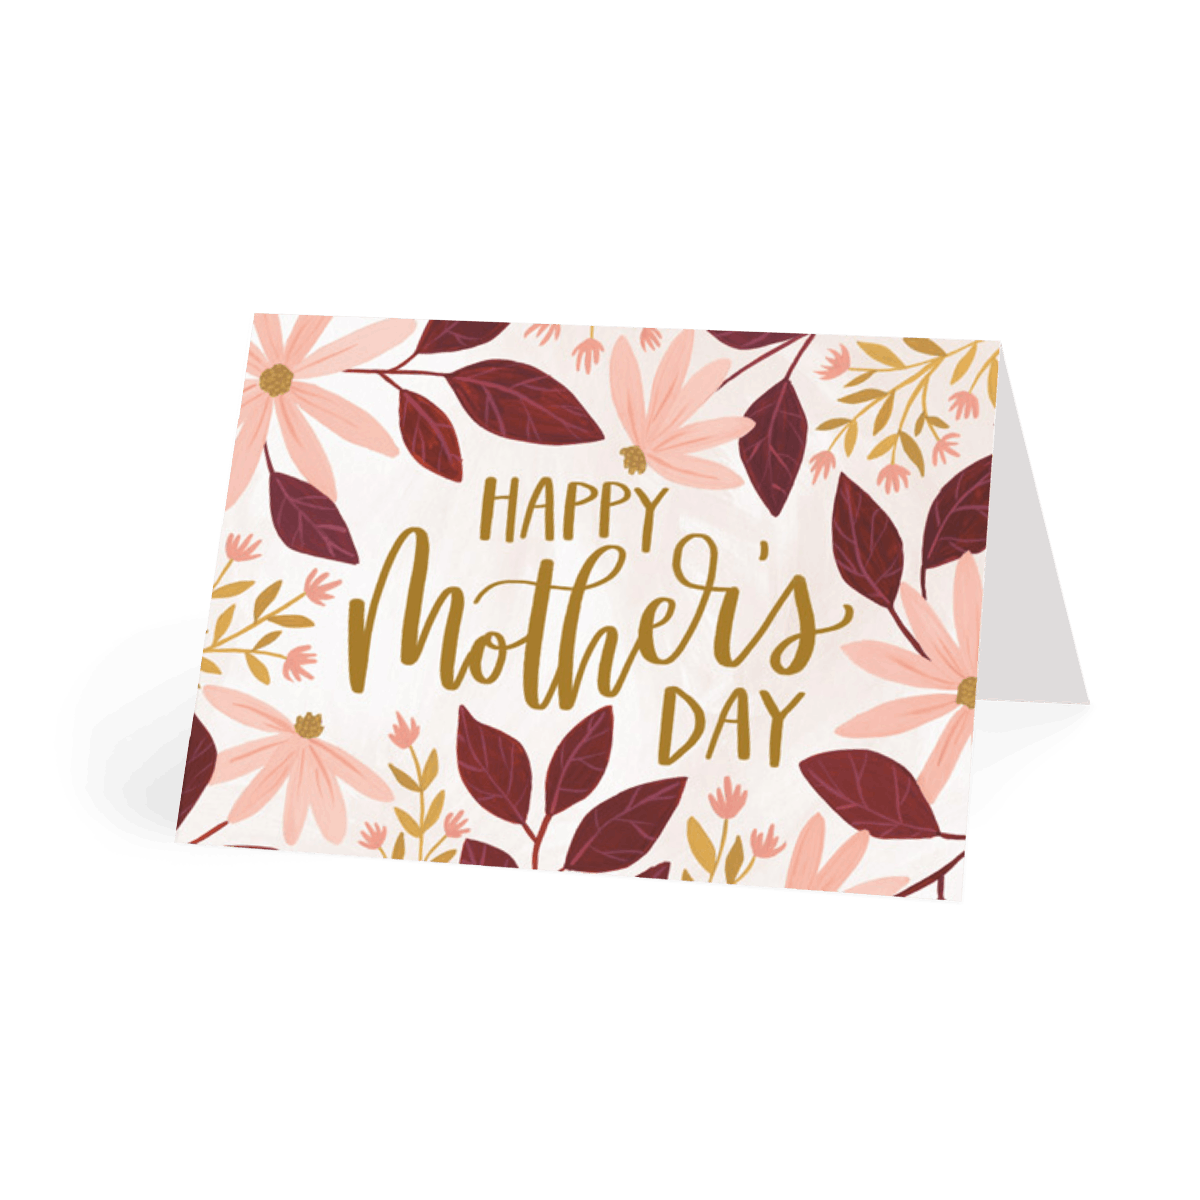 Https%3a%2f%2fwww.papier.com%2fproduct image%2f63051%2f14%2fmother s day foliage 14877 front 1548422331.png?ixlib=rb 1.1